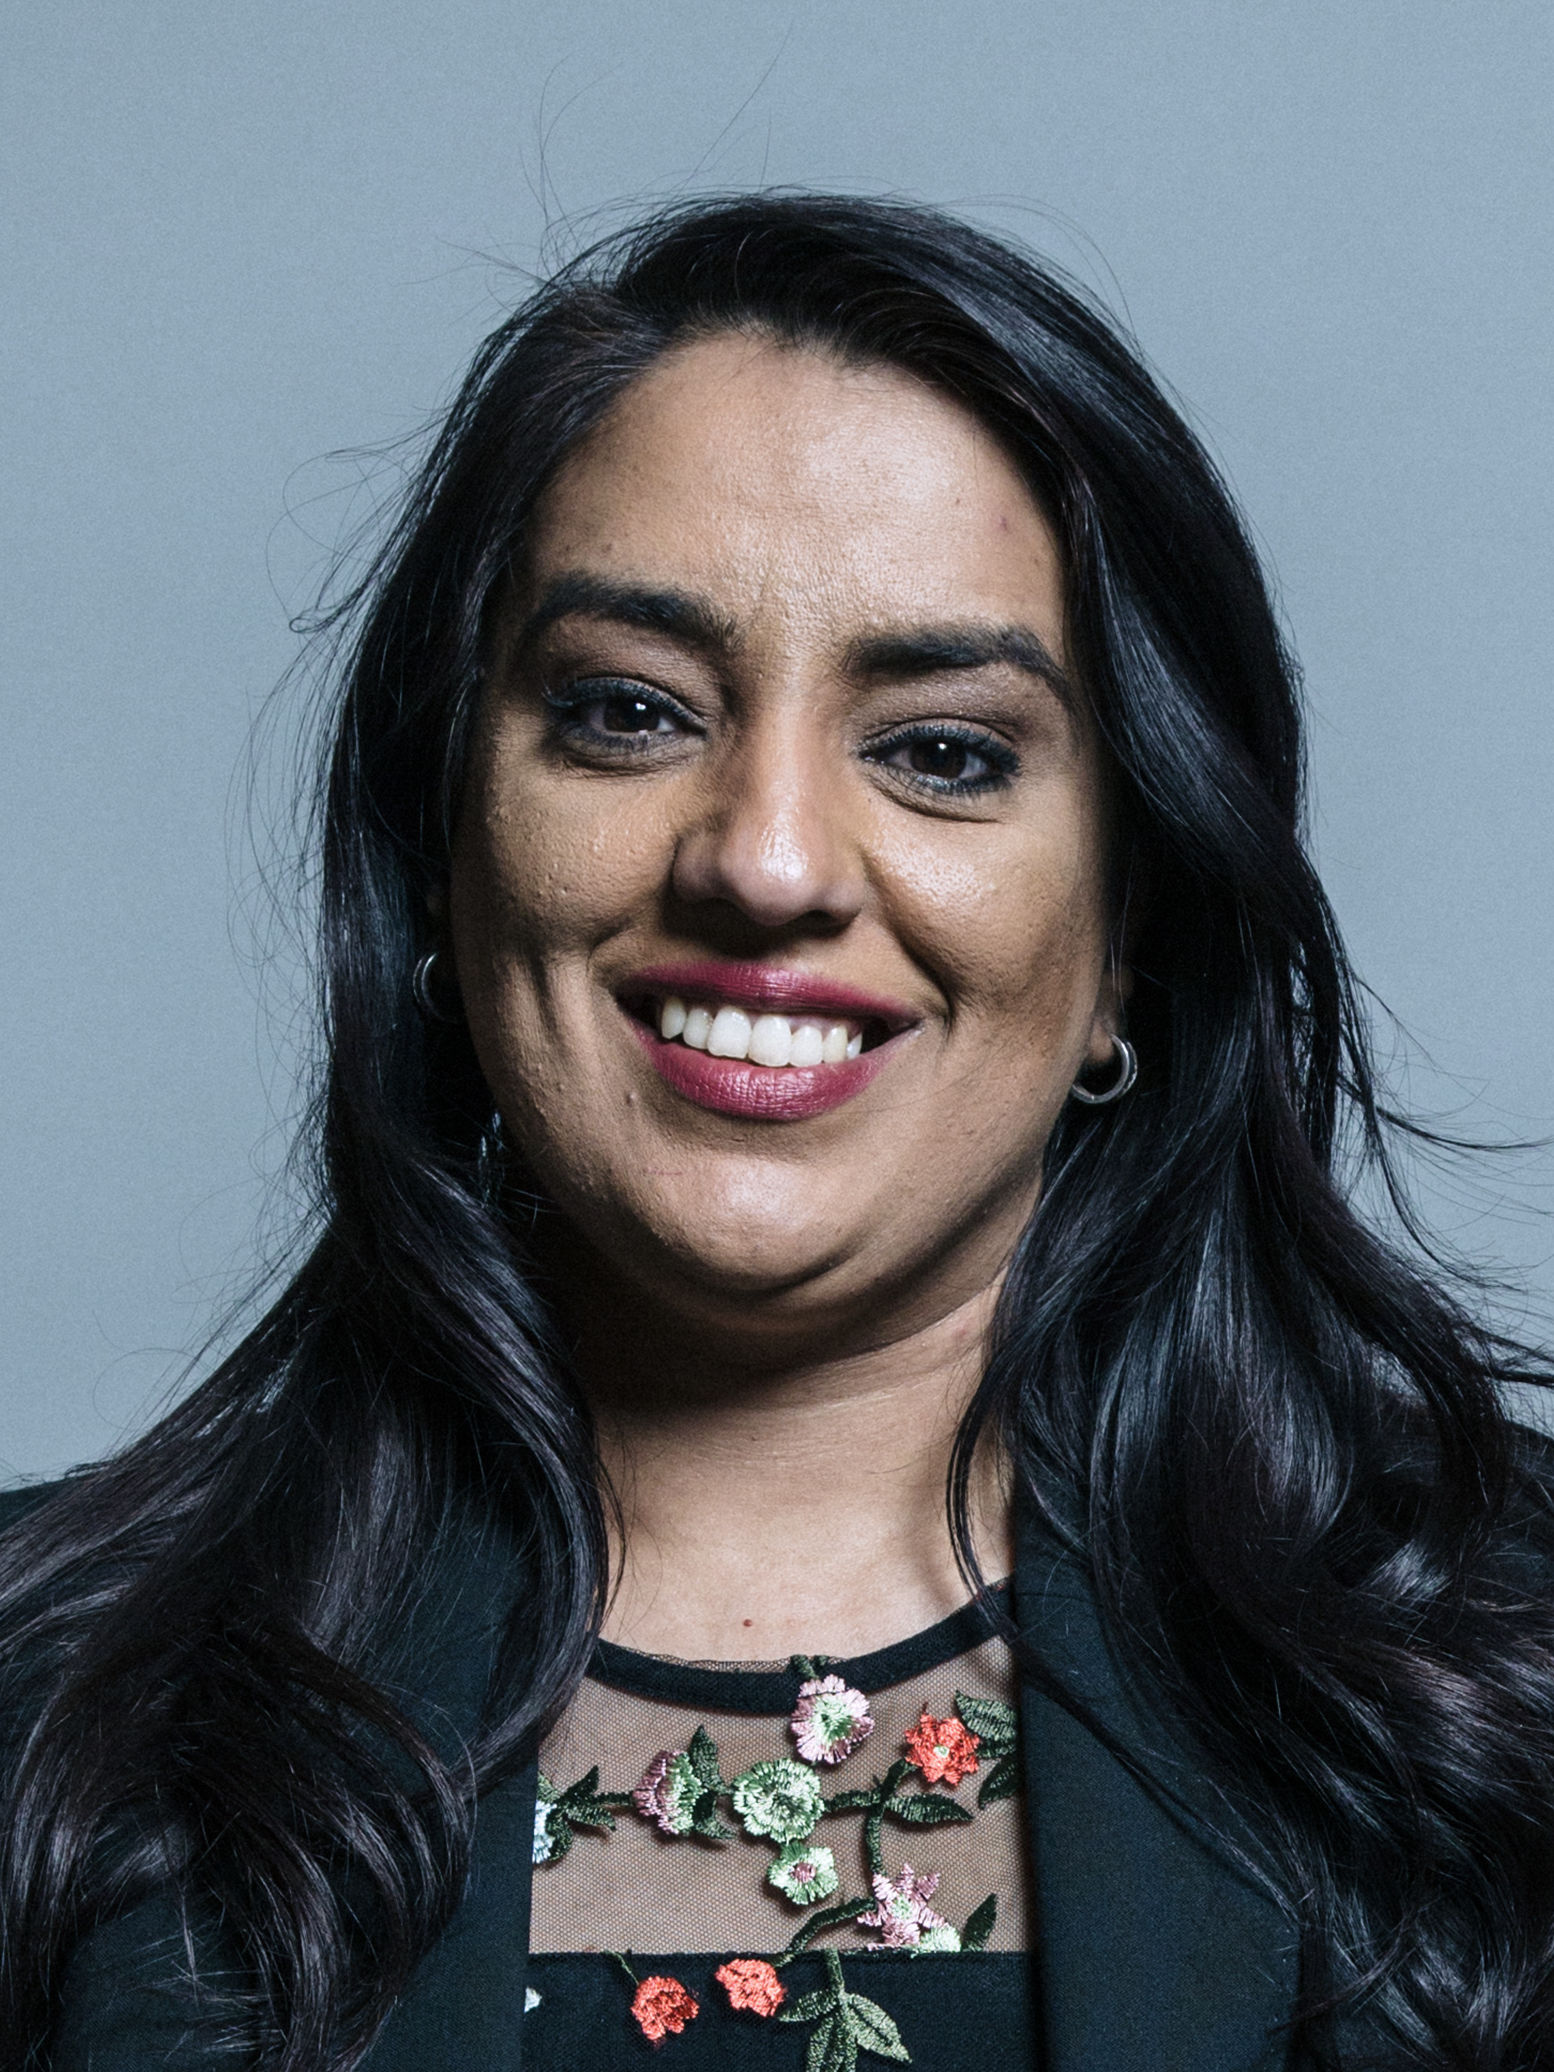 How Naz Shah MP sees Women's Rights and Equality in the UK - Insight